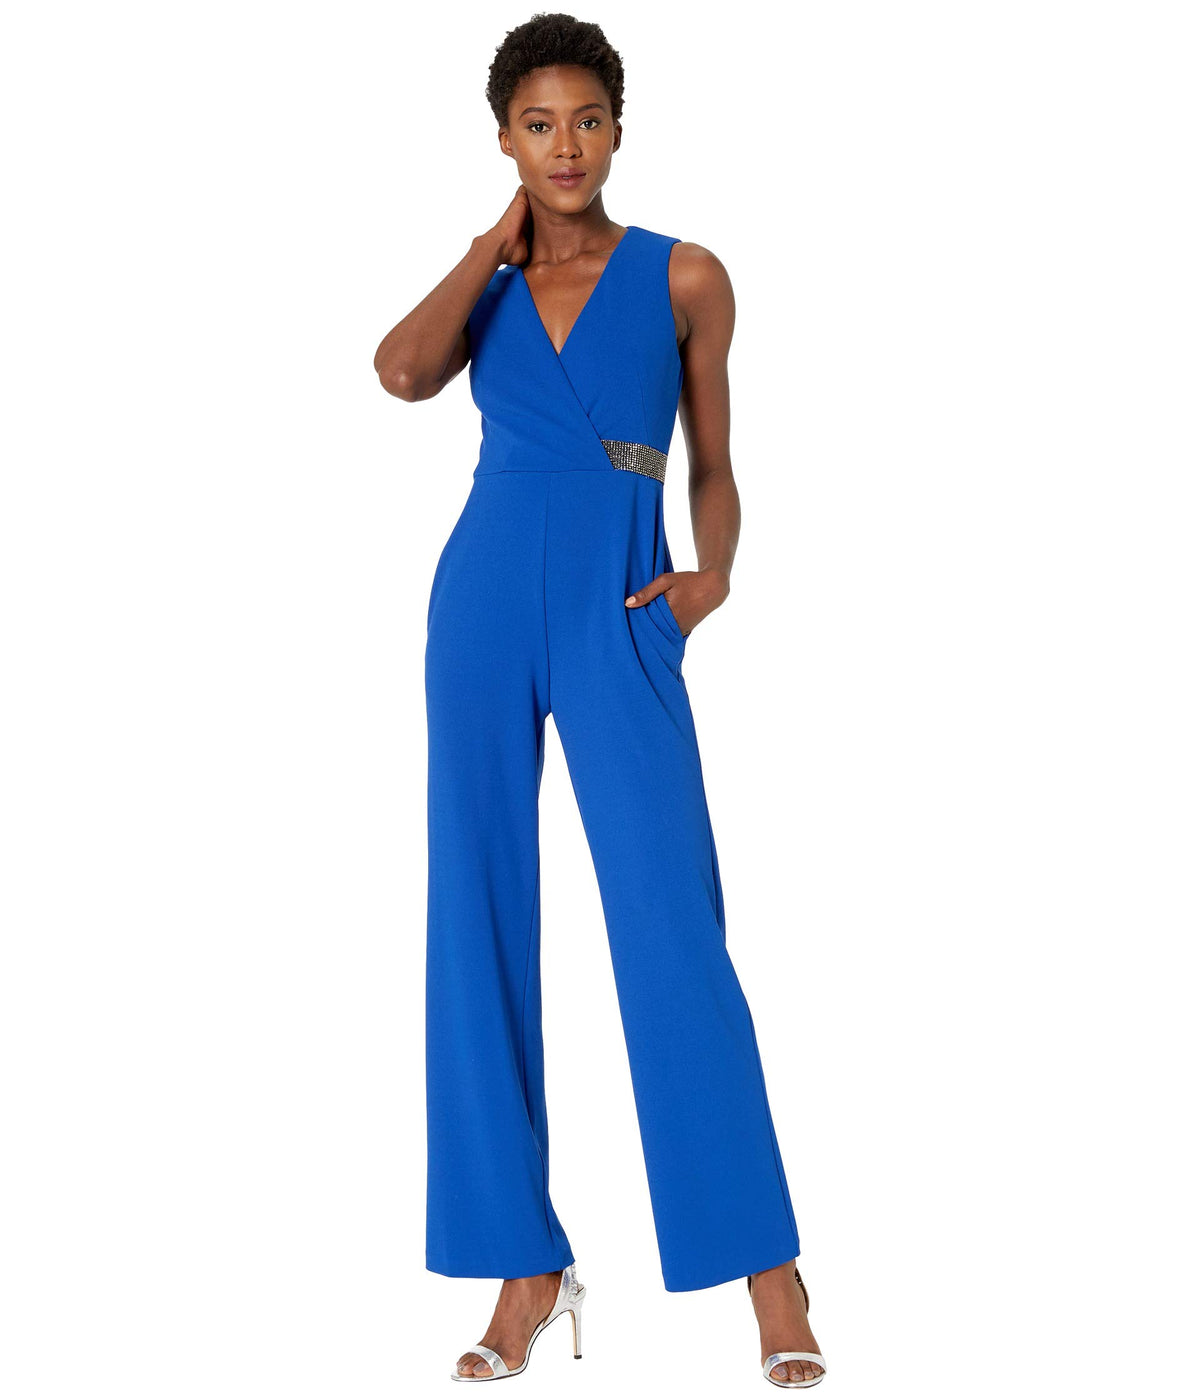 Stretch Crepe Sleeveless Faux Wrap with Crystal Detail Jumpsuit